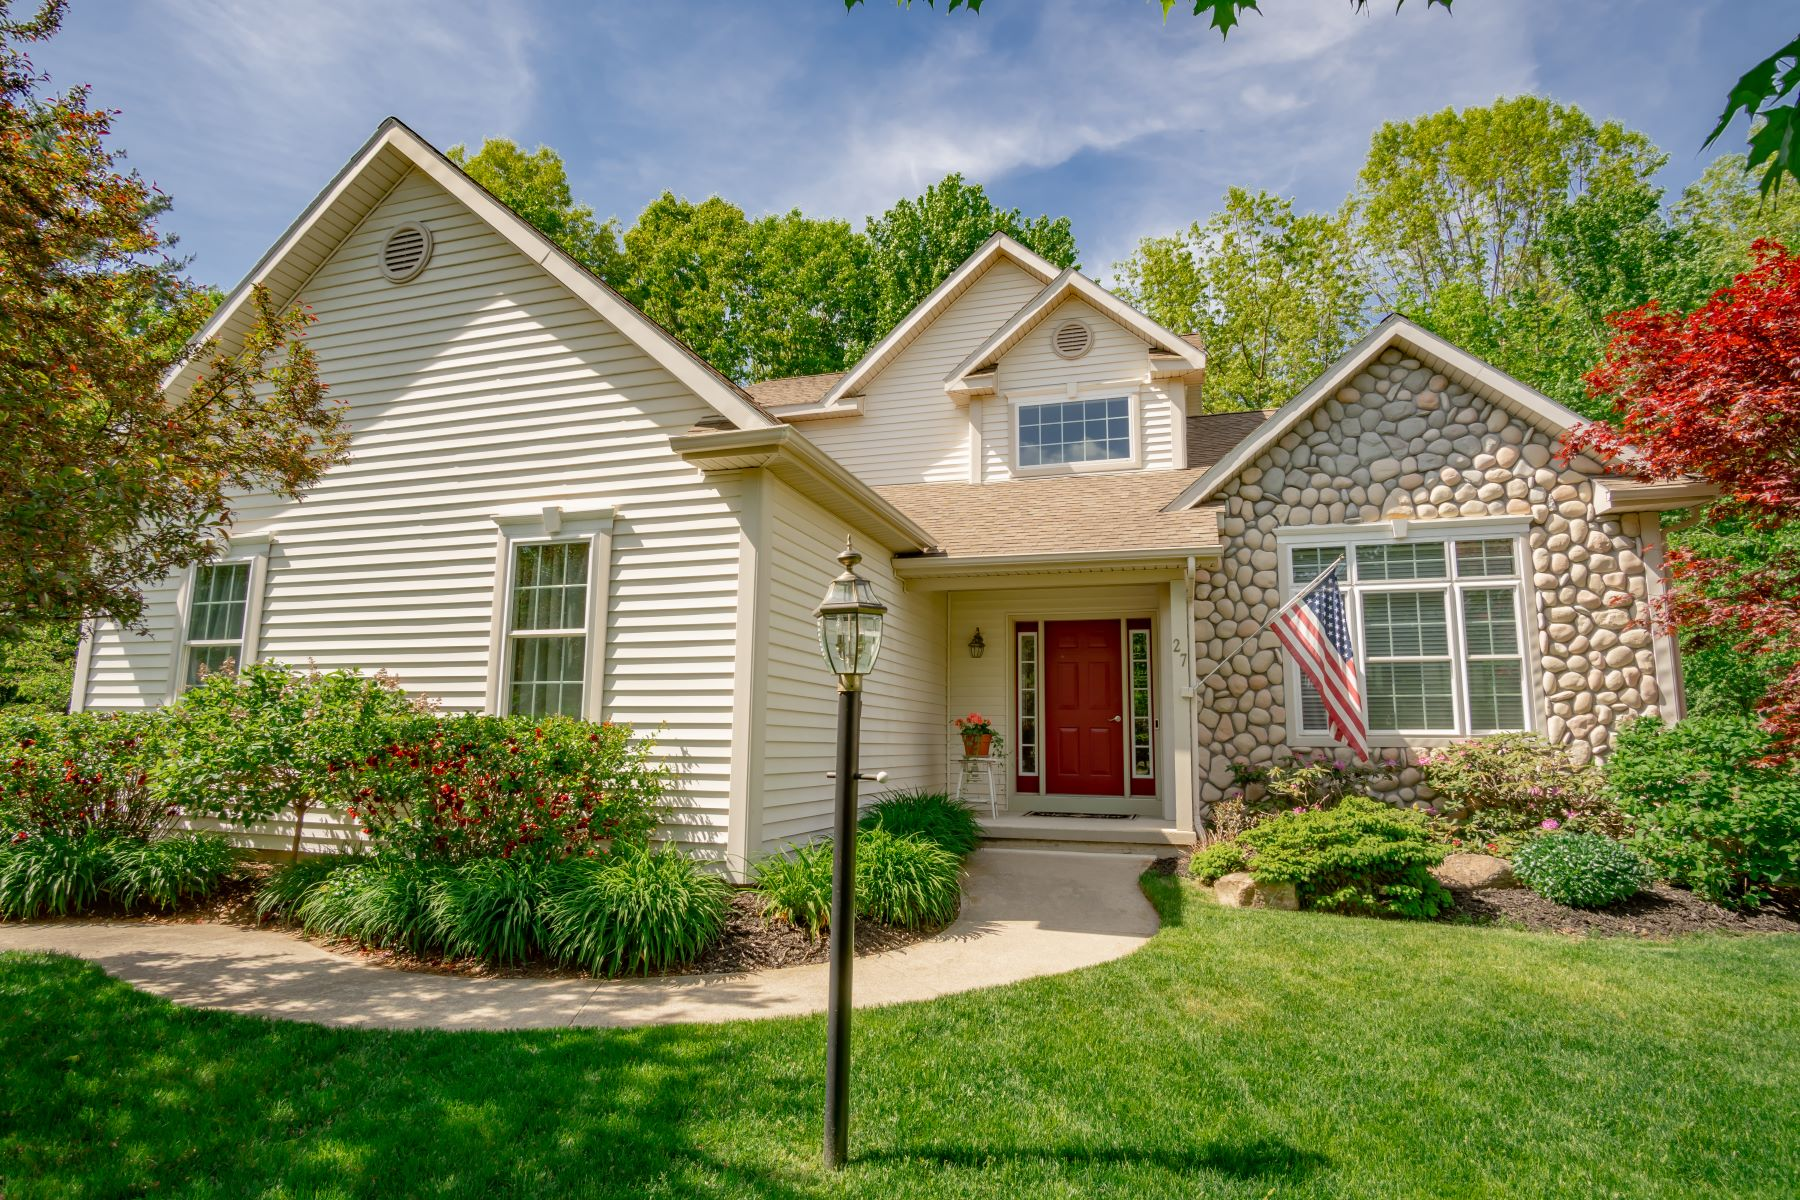 Single Family Homes for Sale at Saratoga Style Living With Four Seasoned Room & Forever Wild Backyard 27 Westbury Drive Saratoga Springs, New York 12866 United States